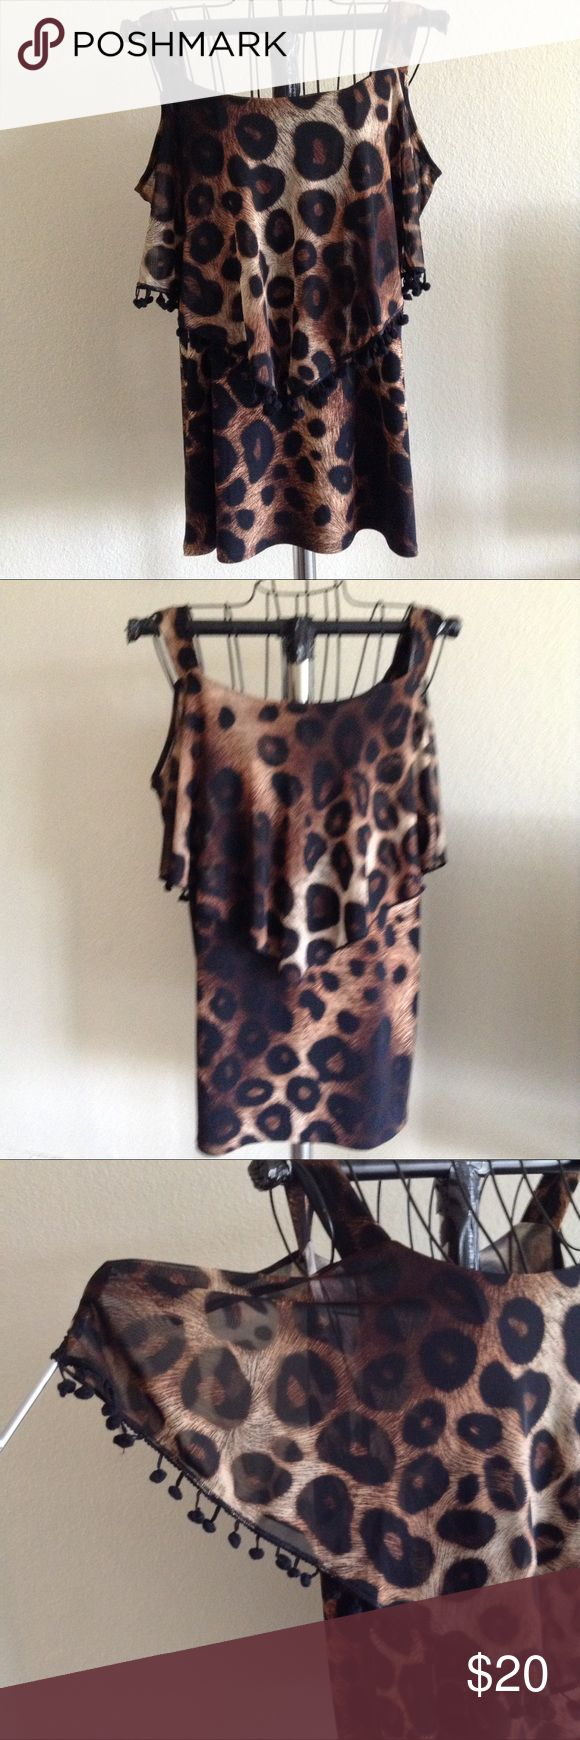 ADELE and MAY Adorable animal print cold shoulder blouse Adele and May Tops Blouses